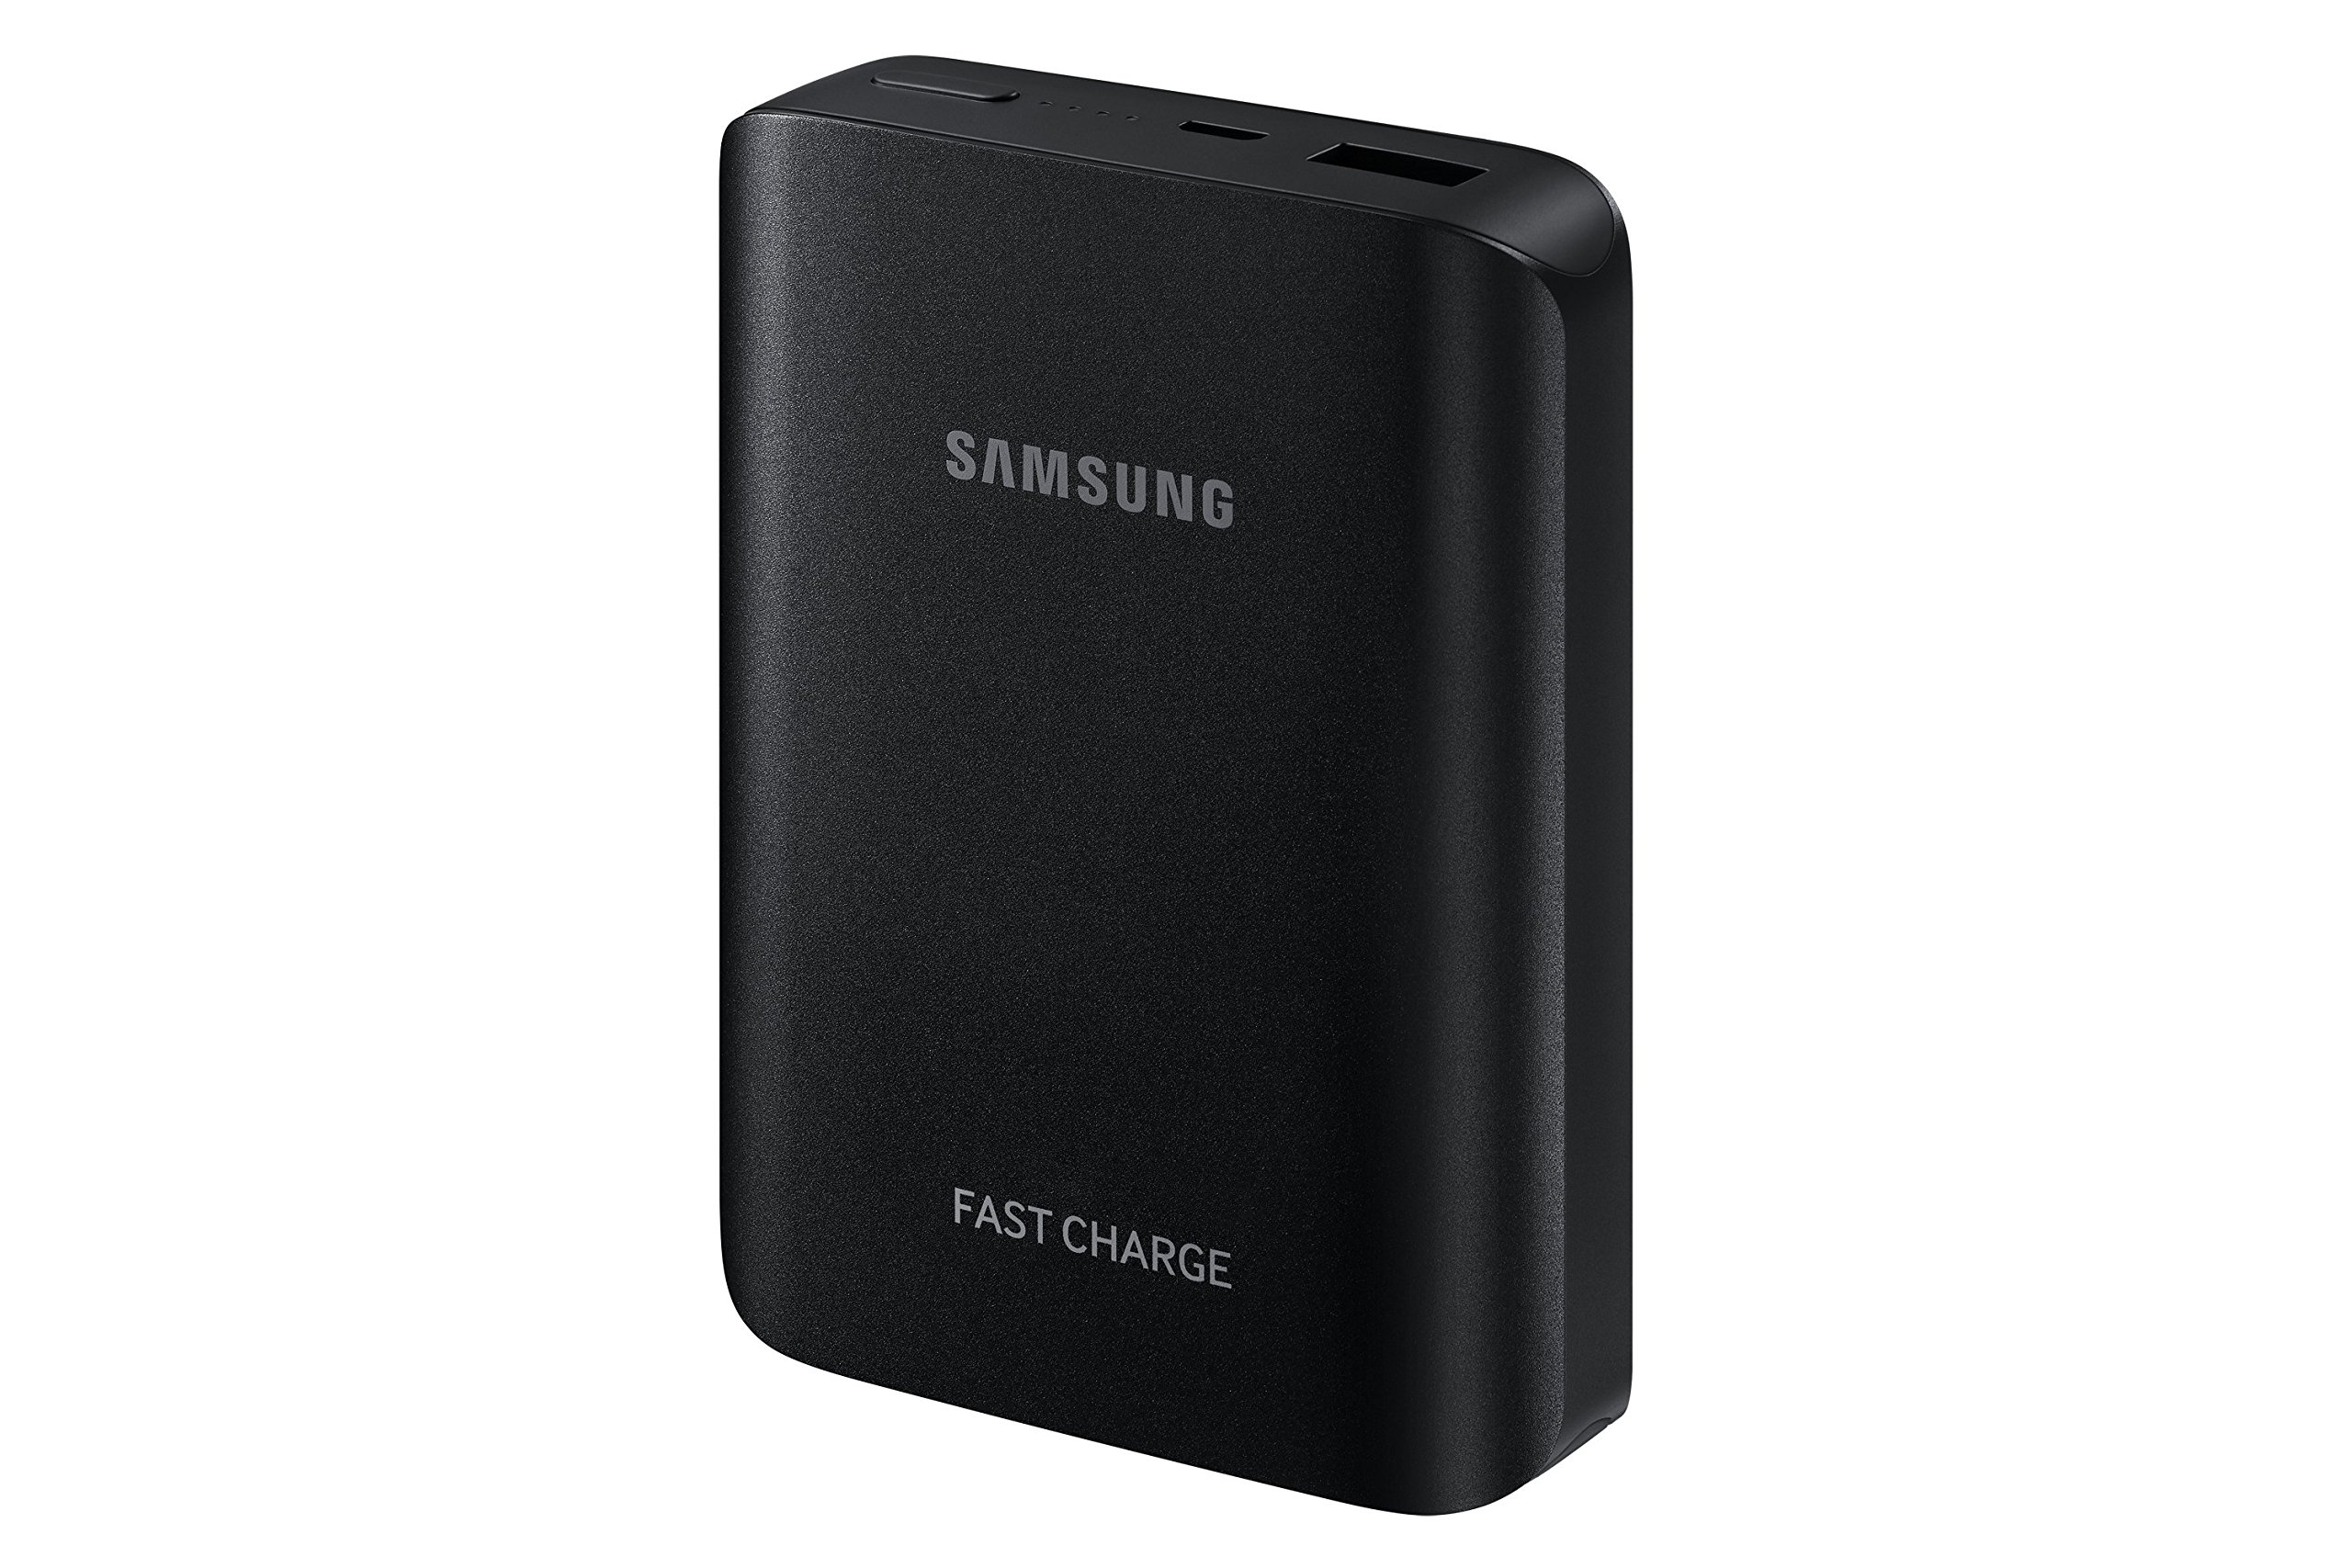 Samsung Fast Charge 10200mAh External Battery Pack, Black